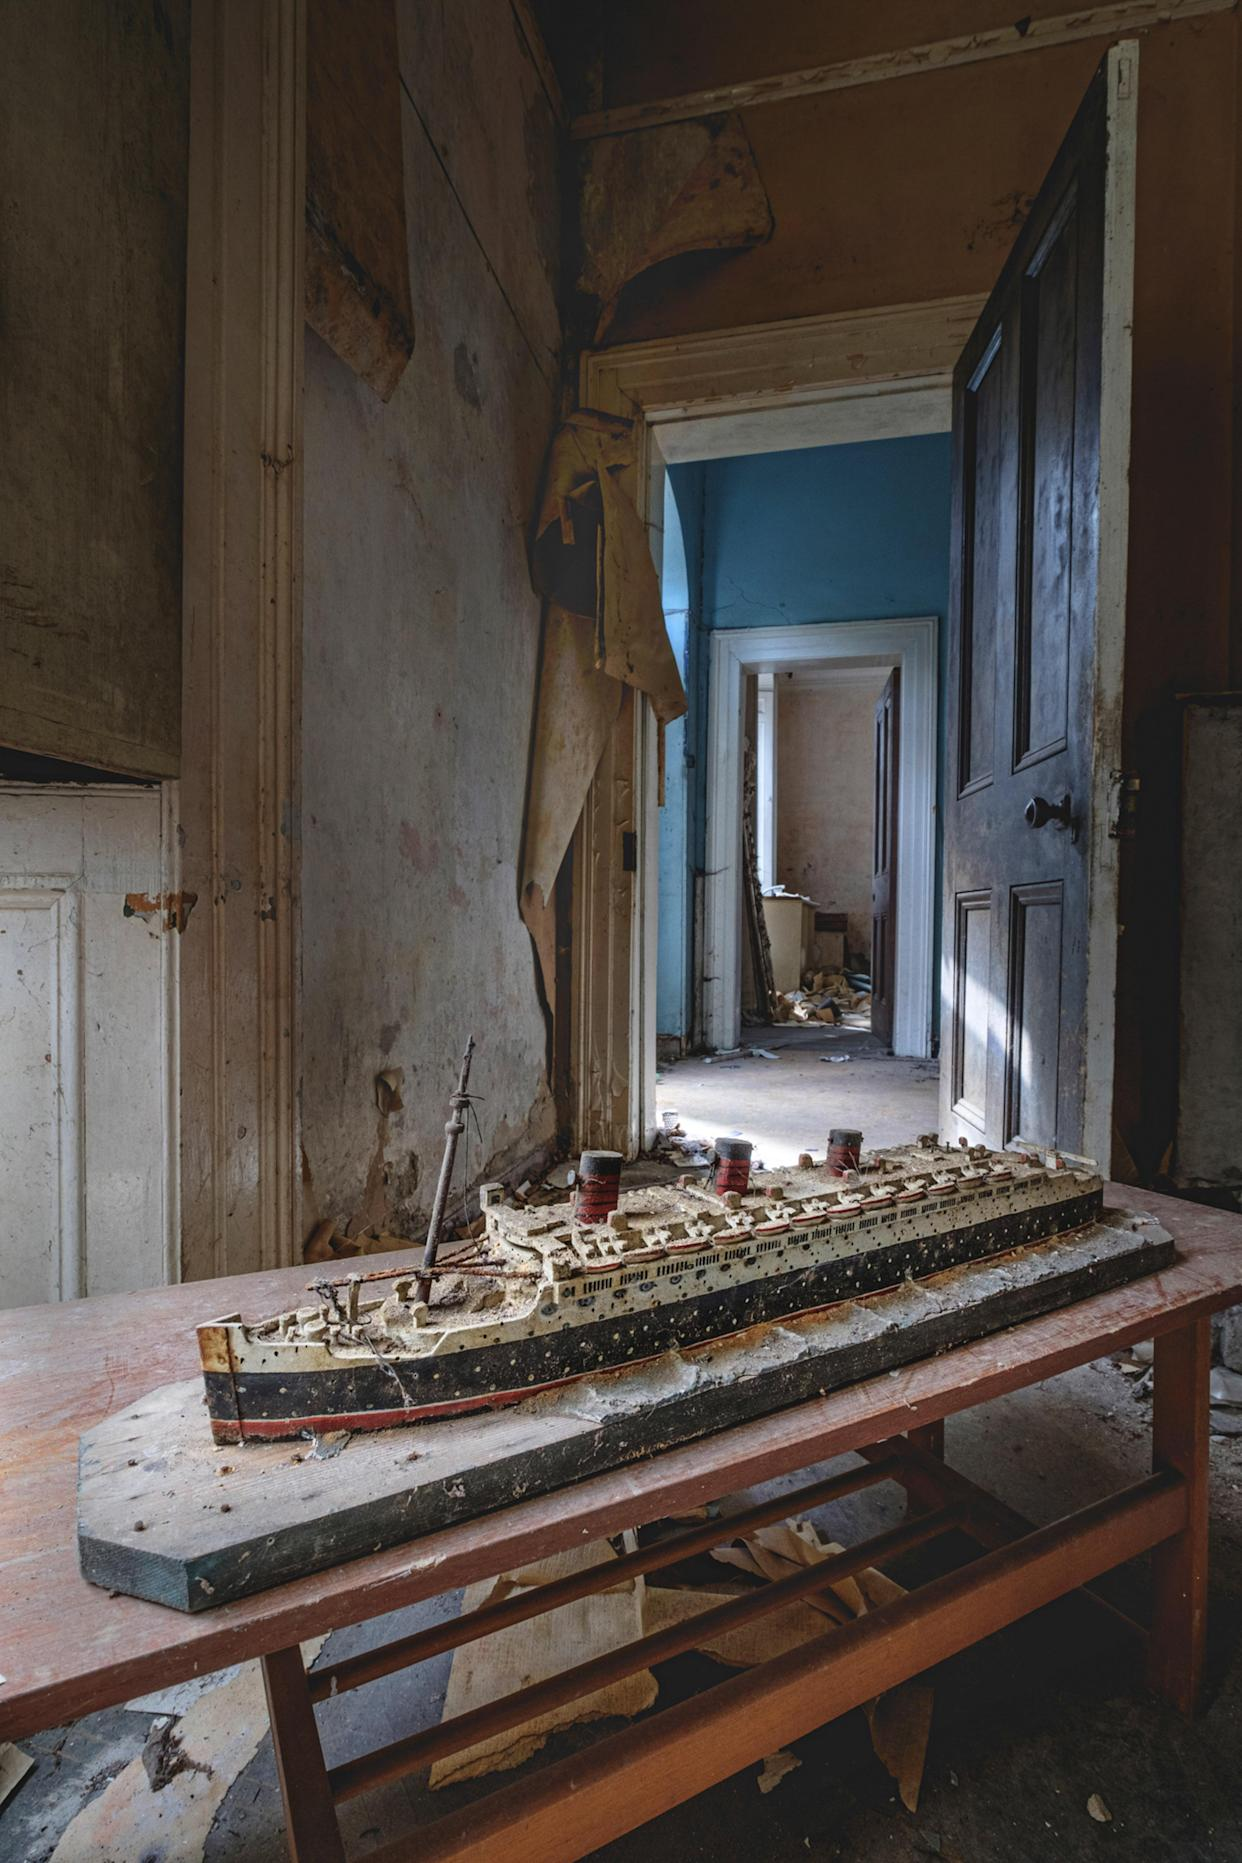 What appears to be a model of the famous steamliner the Titanic inside an abandoned home in Northern Ireland, March 12, 2018. (Photo: Unseen Decay/Mercury Press/Caters News)